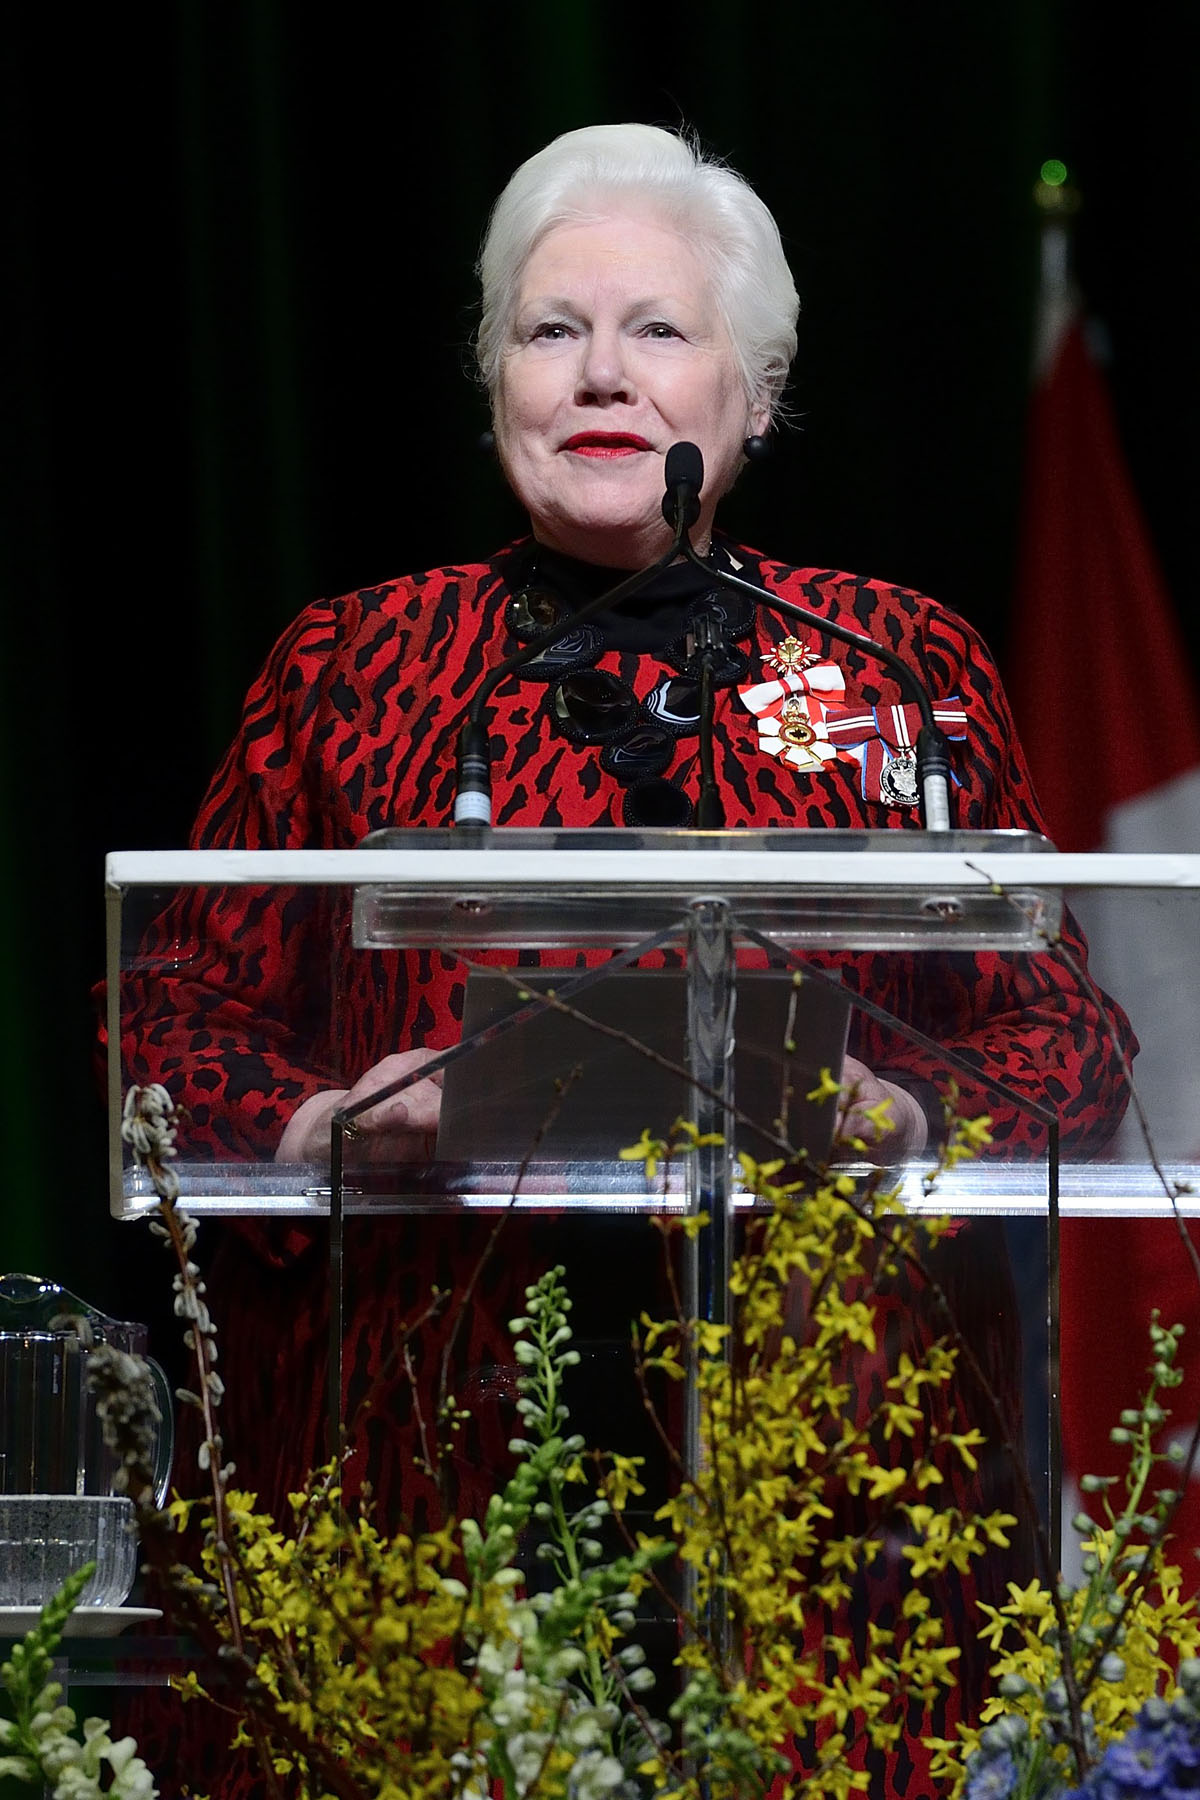 Her Honour the Honourable Elizabeth Dowdeswell, O.C., O.Ont., Lieutenant Governor of Ontario, offered welcoming remarks.